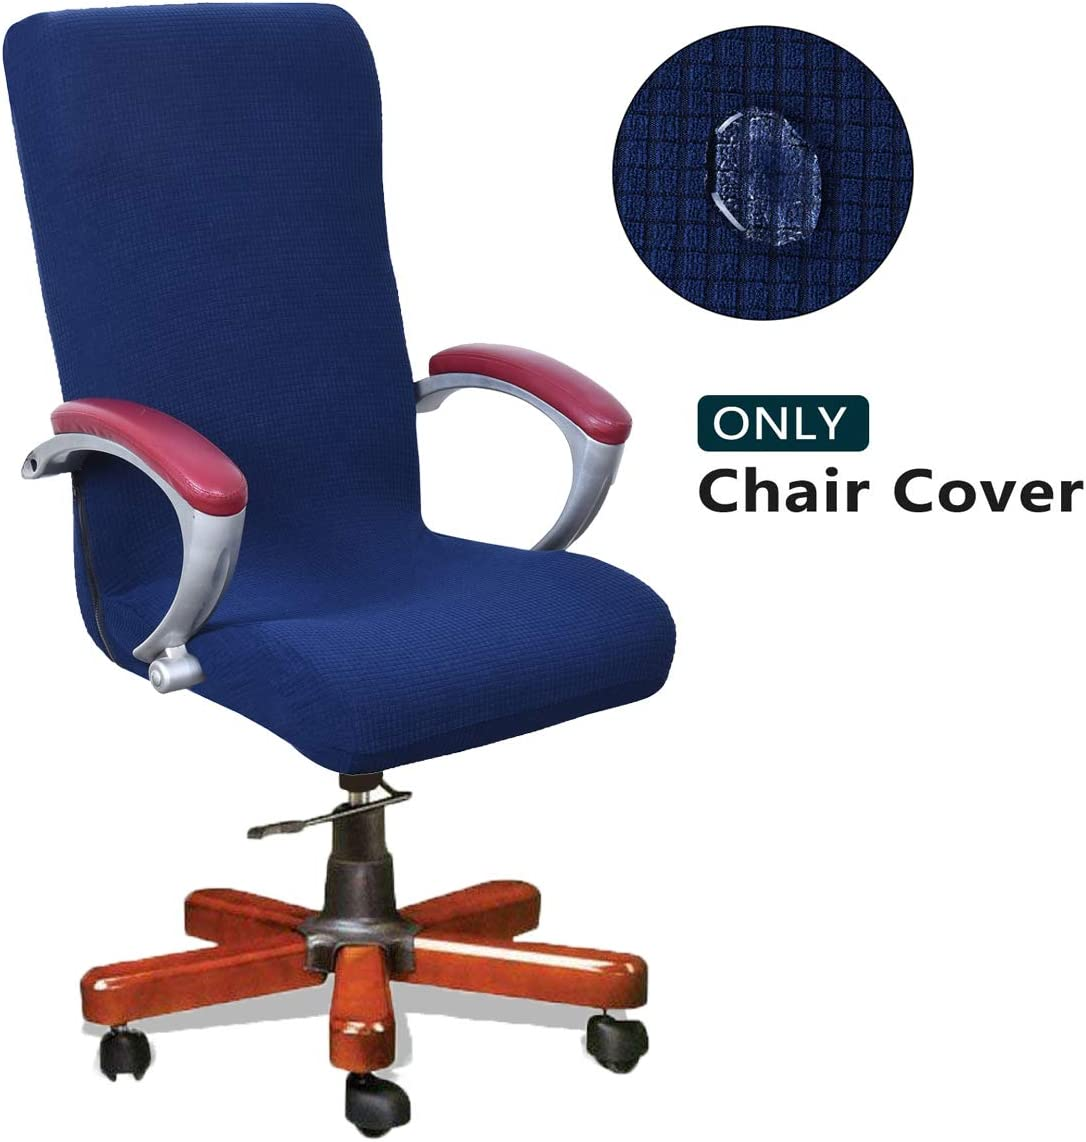 WOMACO Waterproof Office Chair Cover, Jacquard Computer Office Chair Covers Water-Repellent Universal Boss Chair Covers Modern Simplism Style High Back Chair Slipcover (Navy, Large)